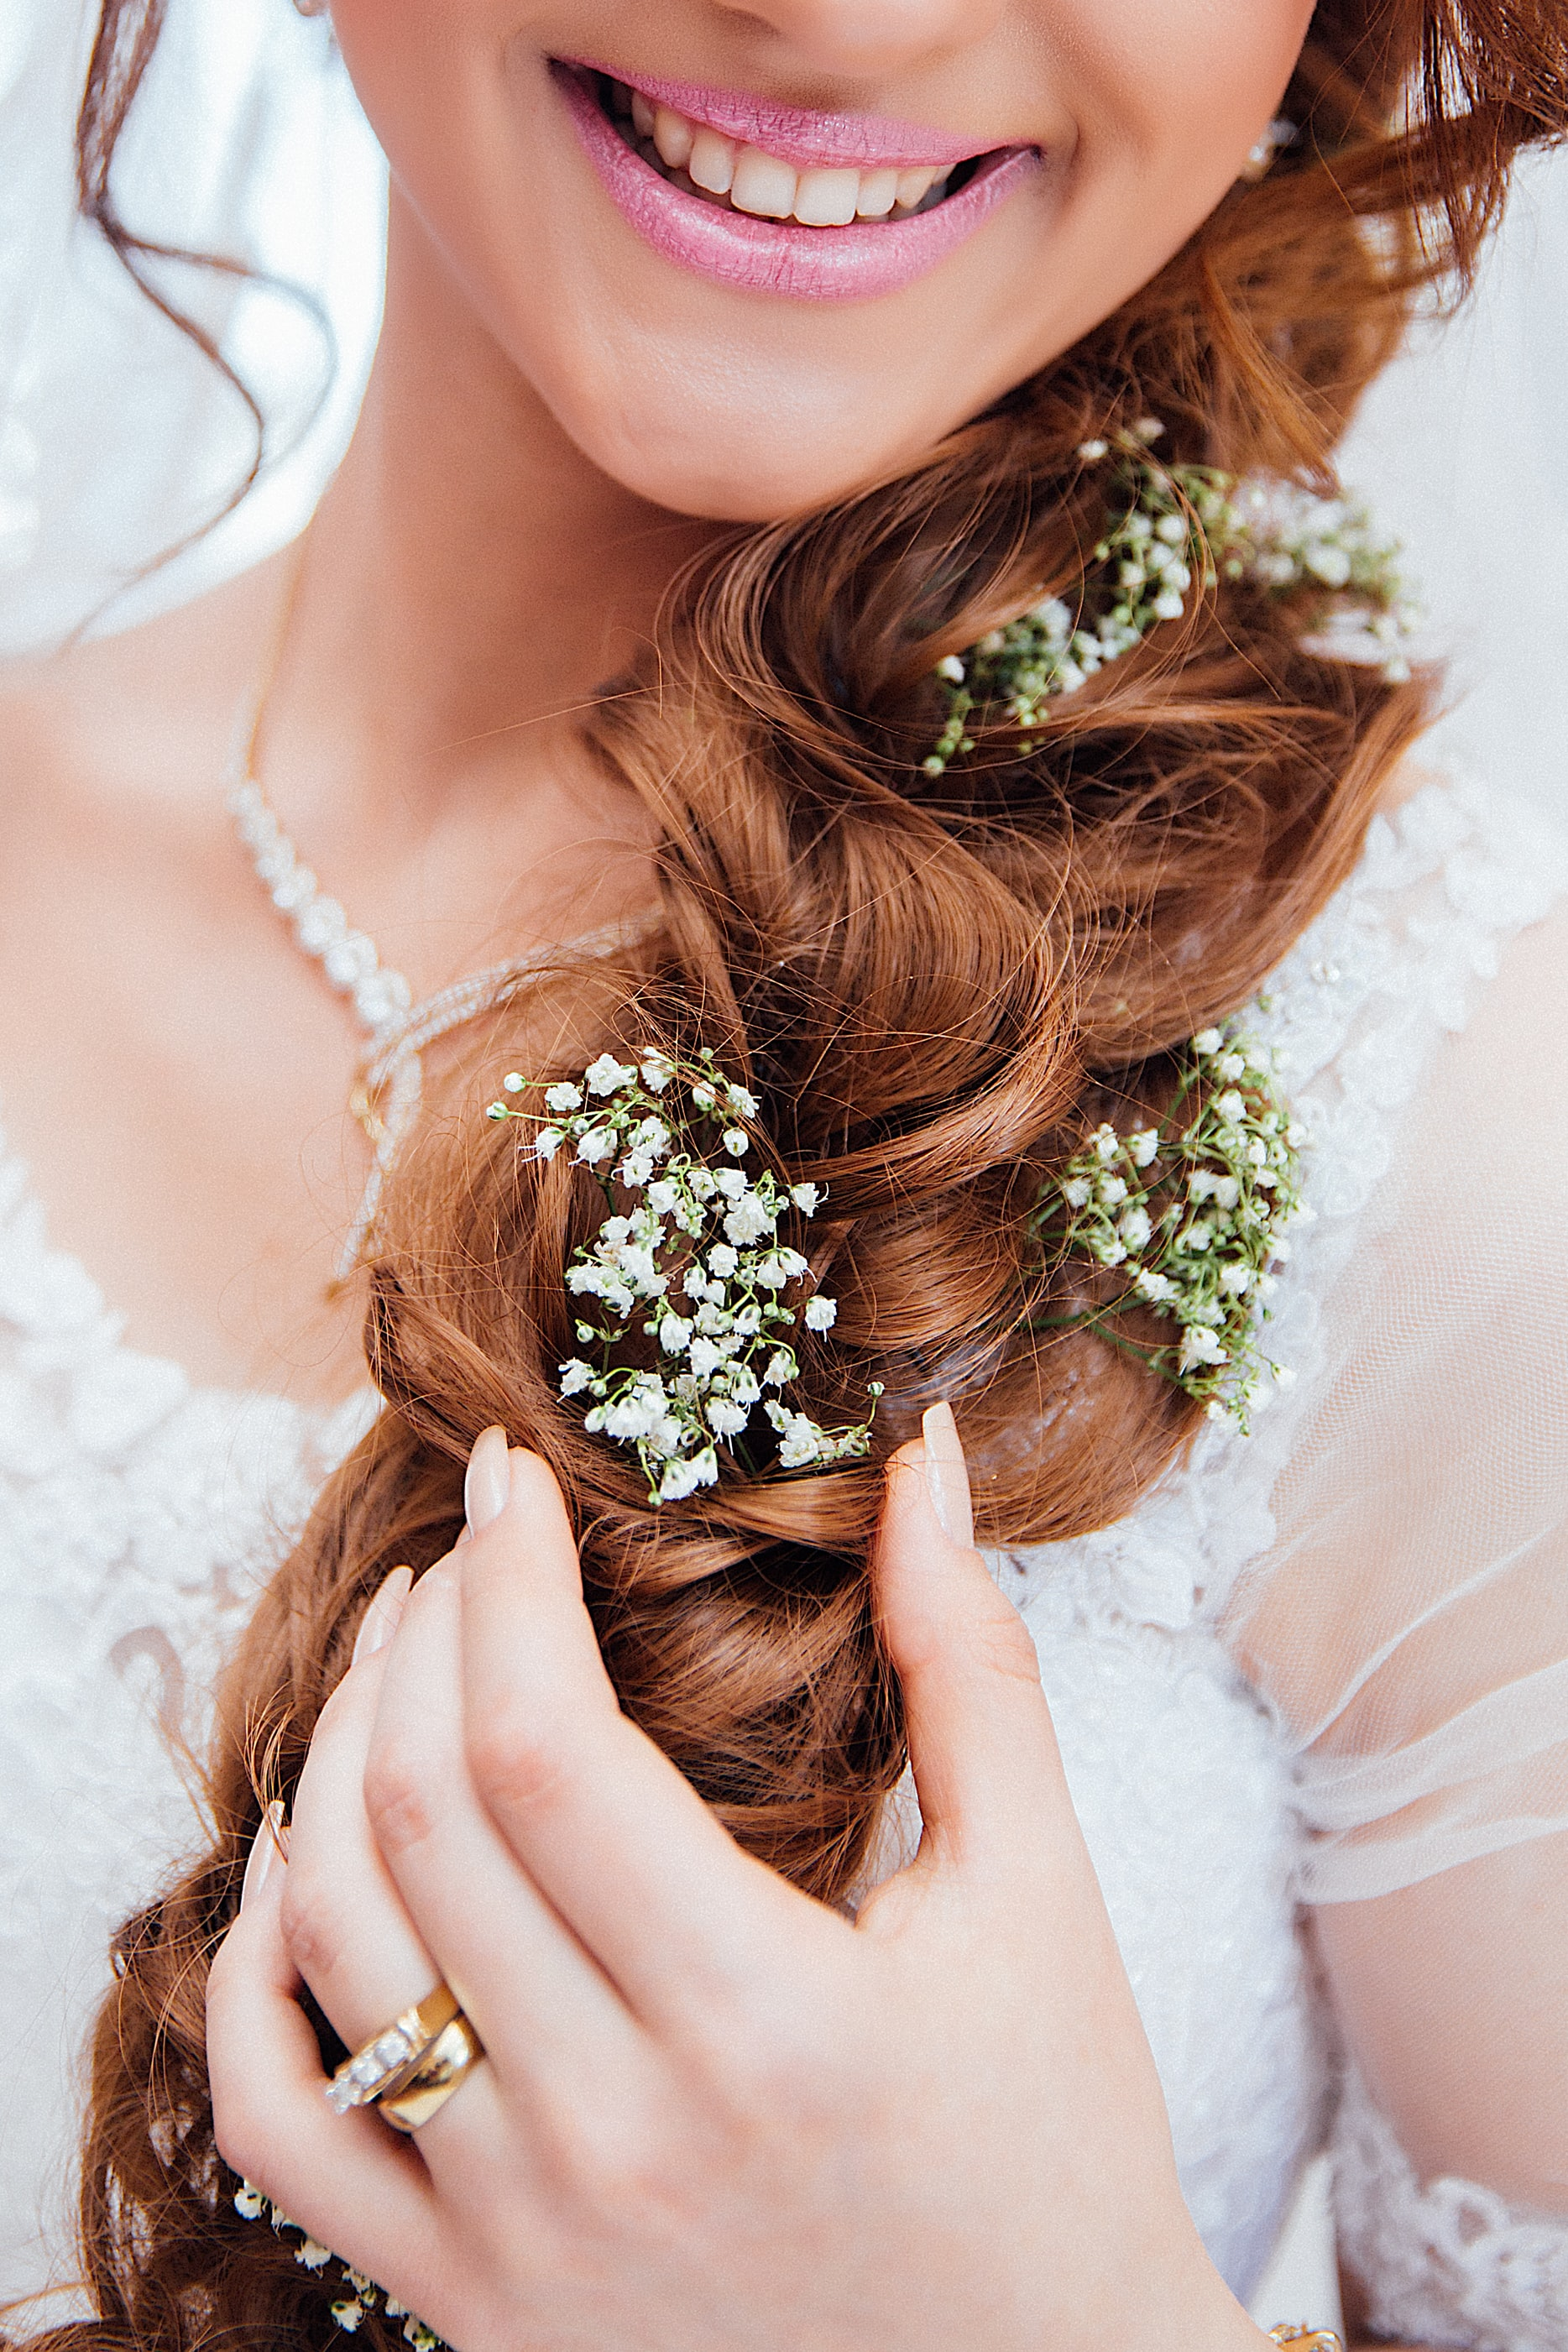 Bridal Jewelry for the Fashionable Bride